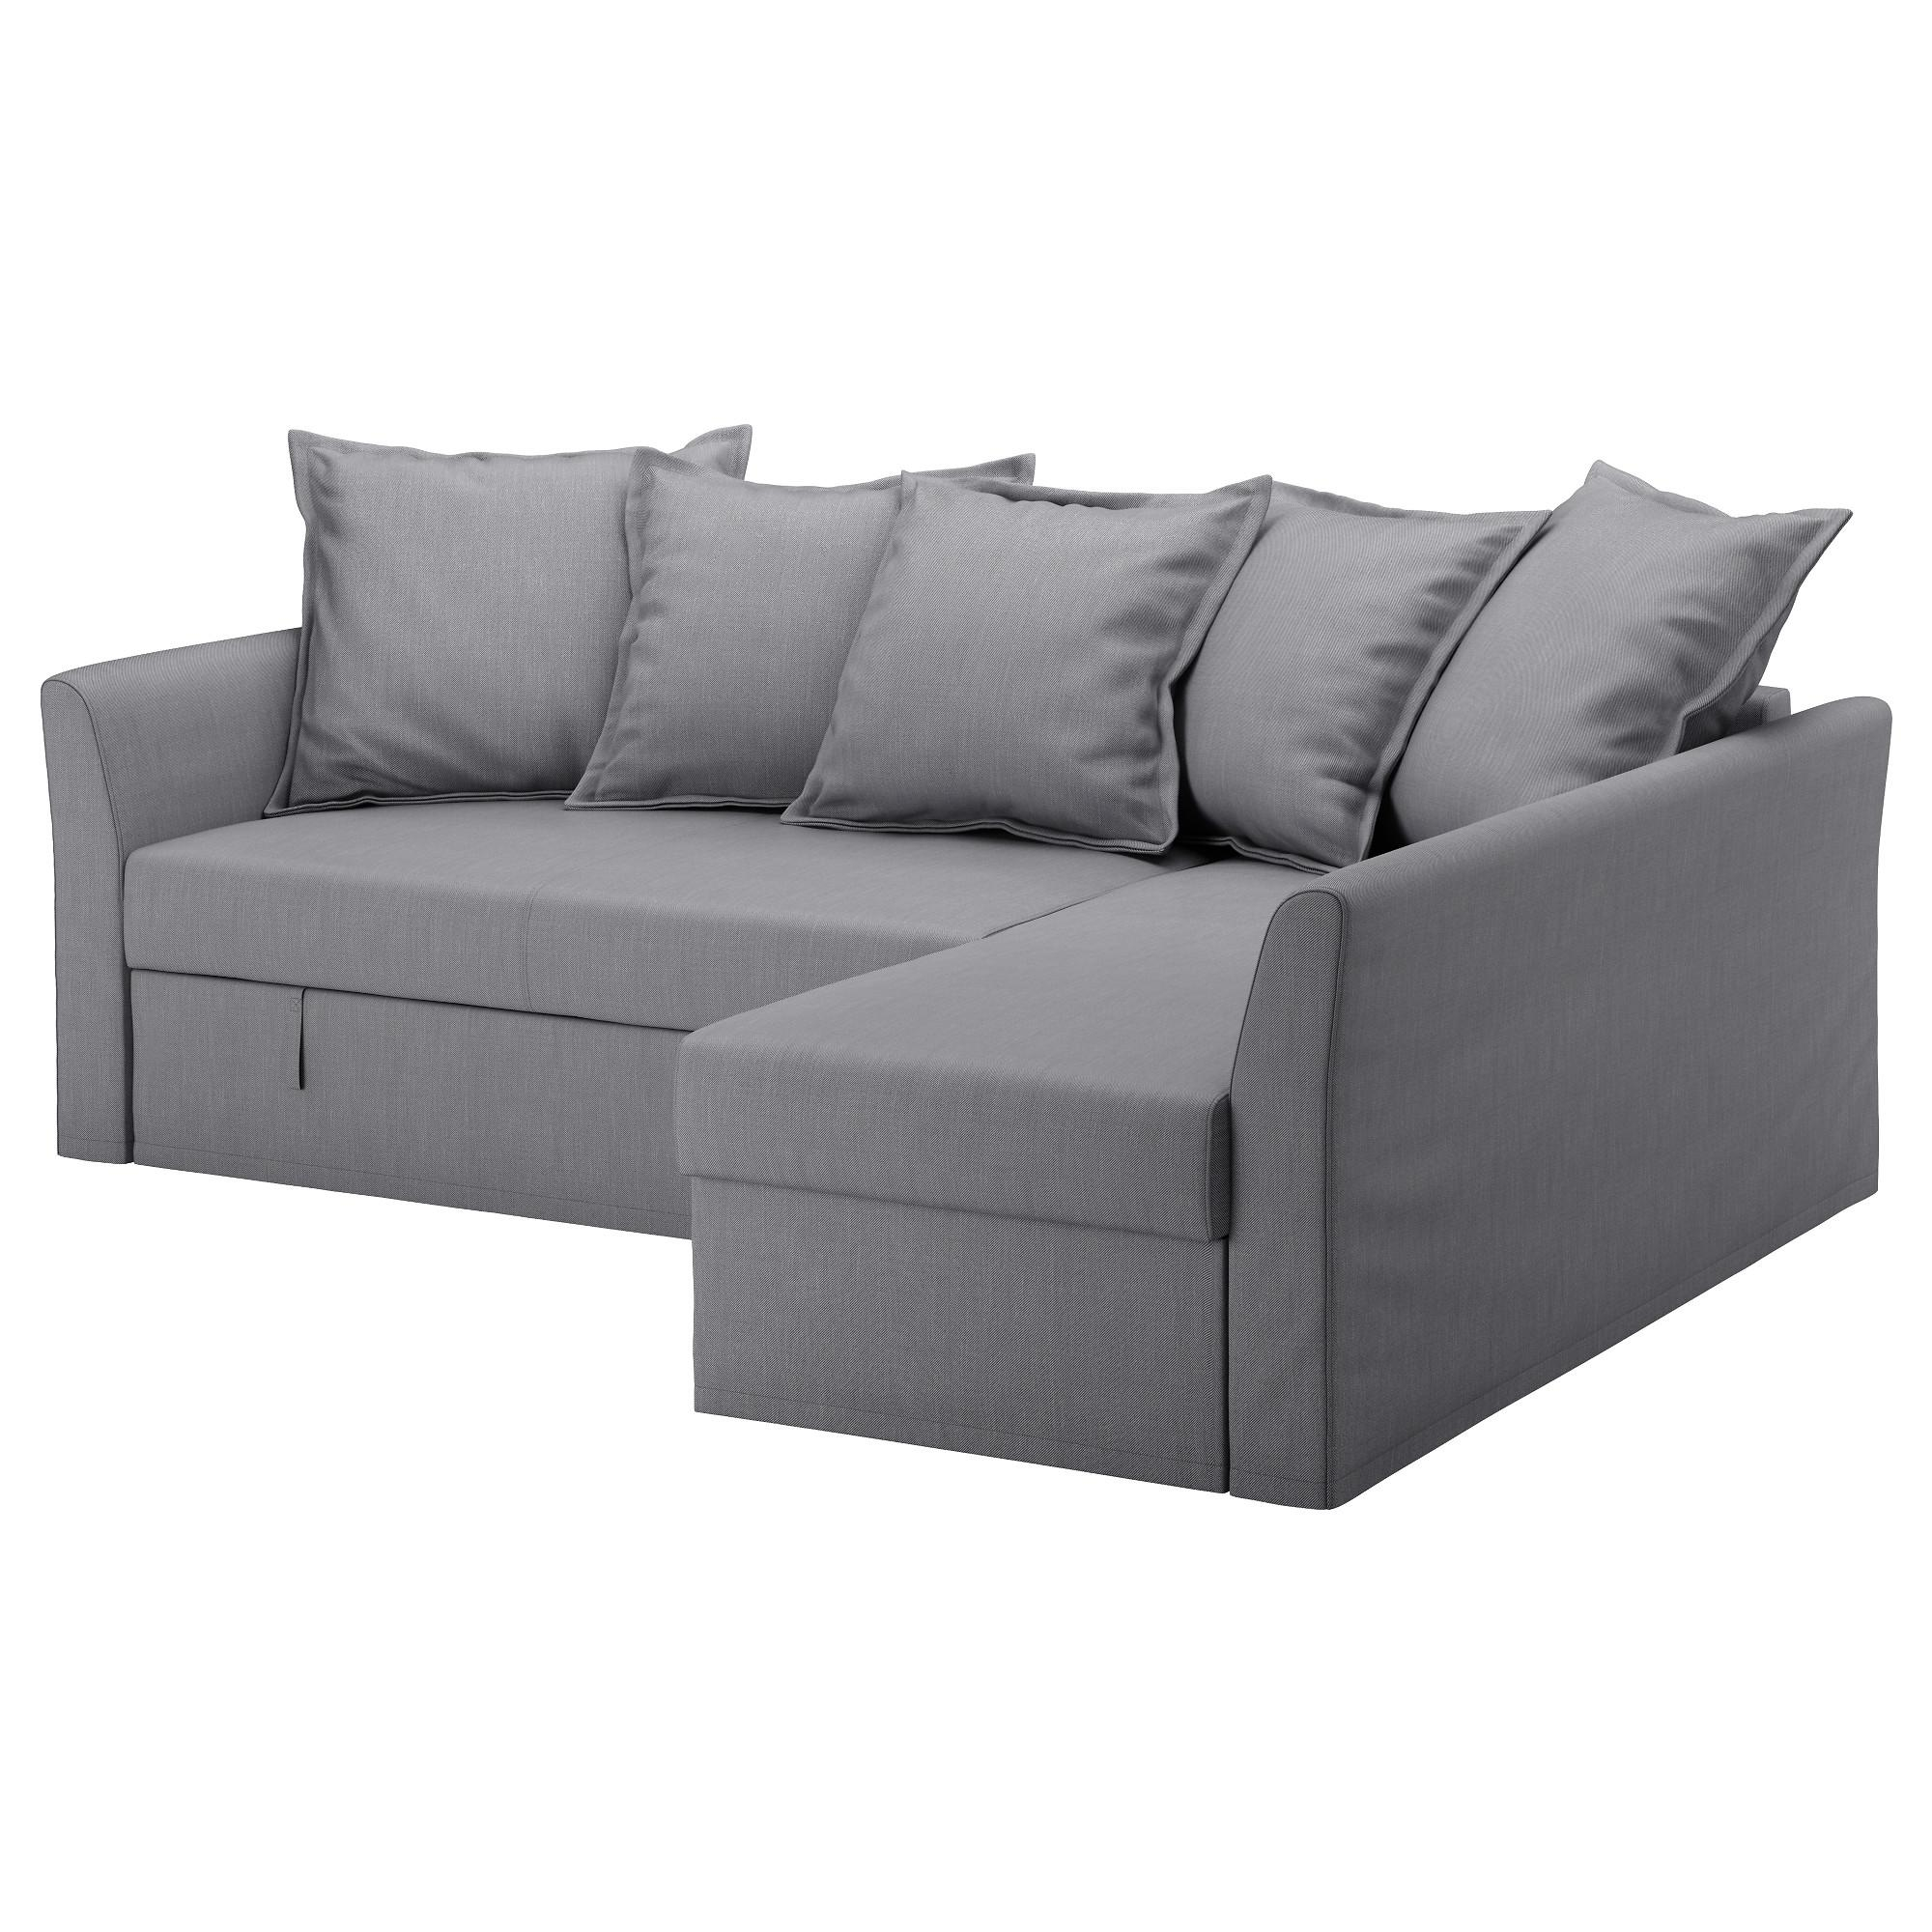 Holmsund Cover For Sleeper Sectional, 3 Seat – Nordvalla Medium With Storage Sofa Ikea (Image 13 of 20)